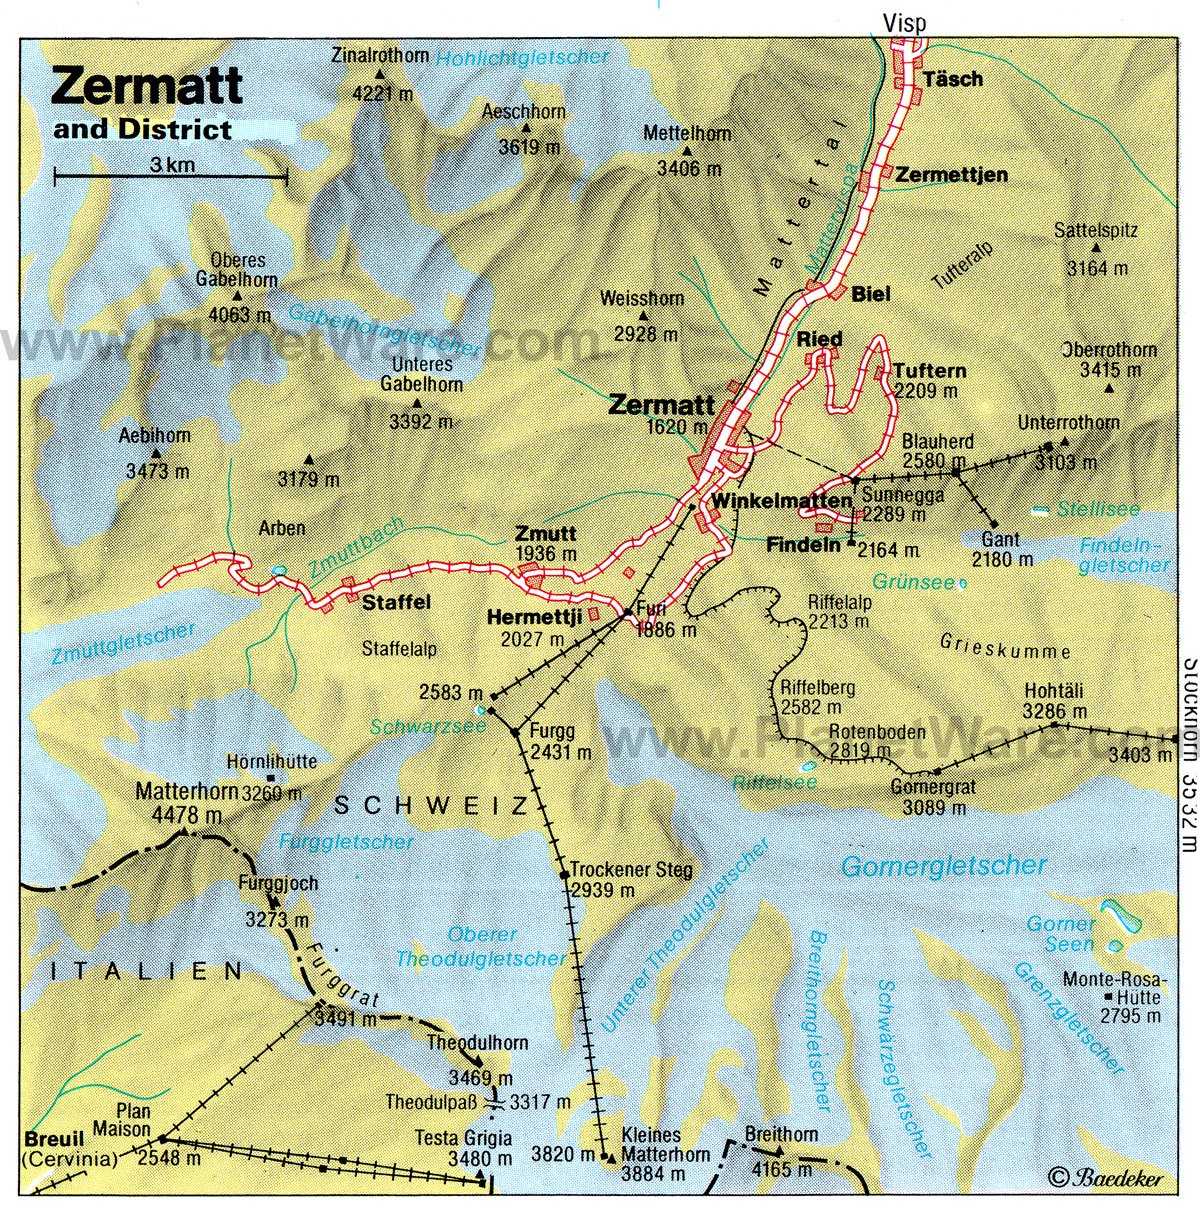 10 Top Tourist Attractions in Zermatt and Easy Day Trips – Montana Tourist Attractions Map